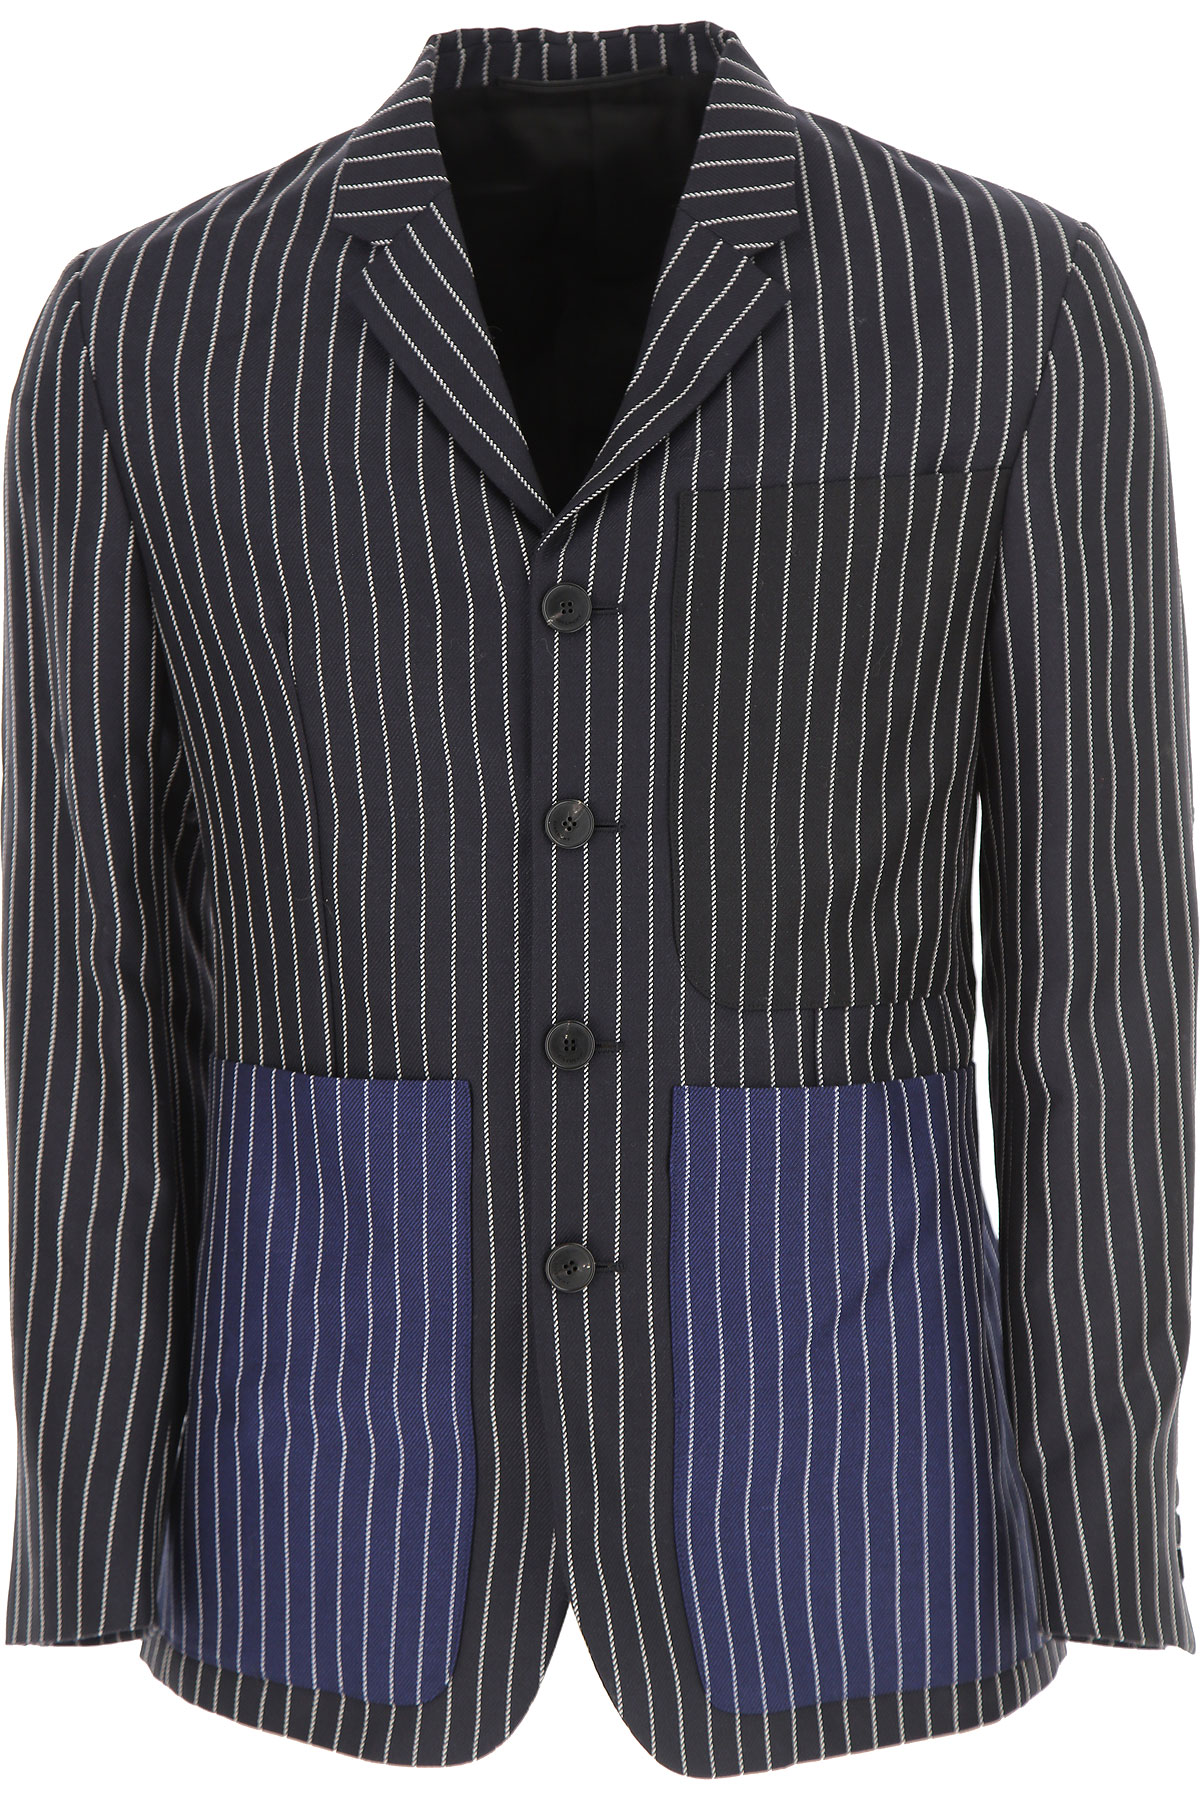 Givenchy Blazer for Men, Sport Coat On Sale in Outlet, Blue Navy, Wool, 2019, L XXL